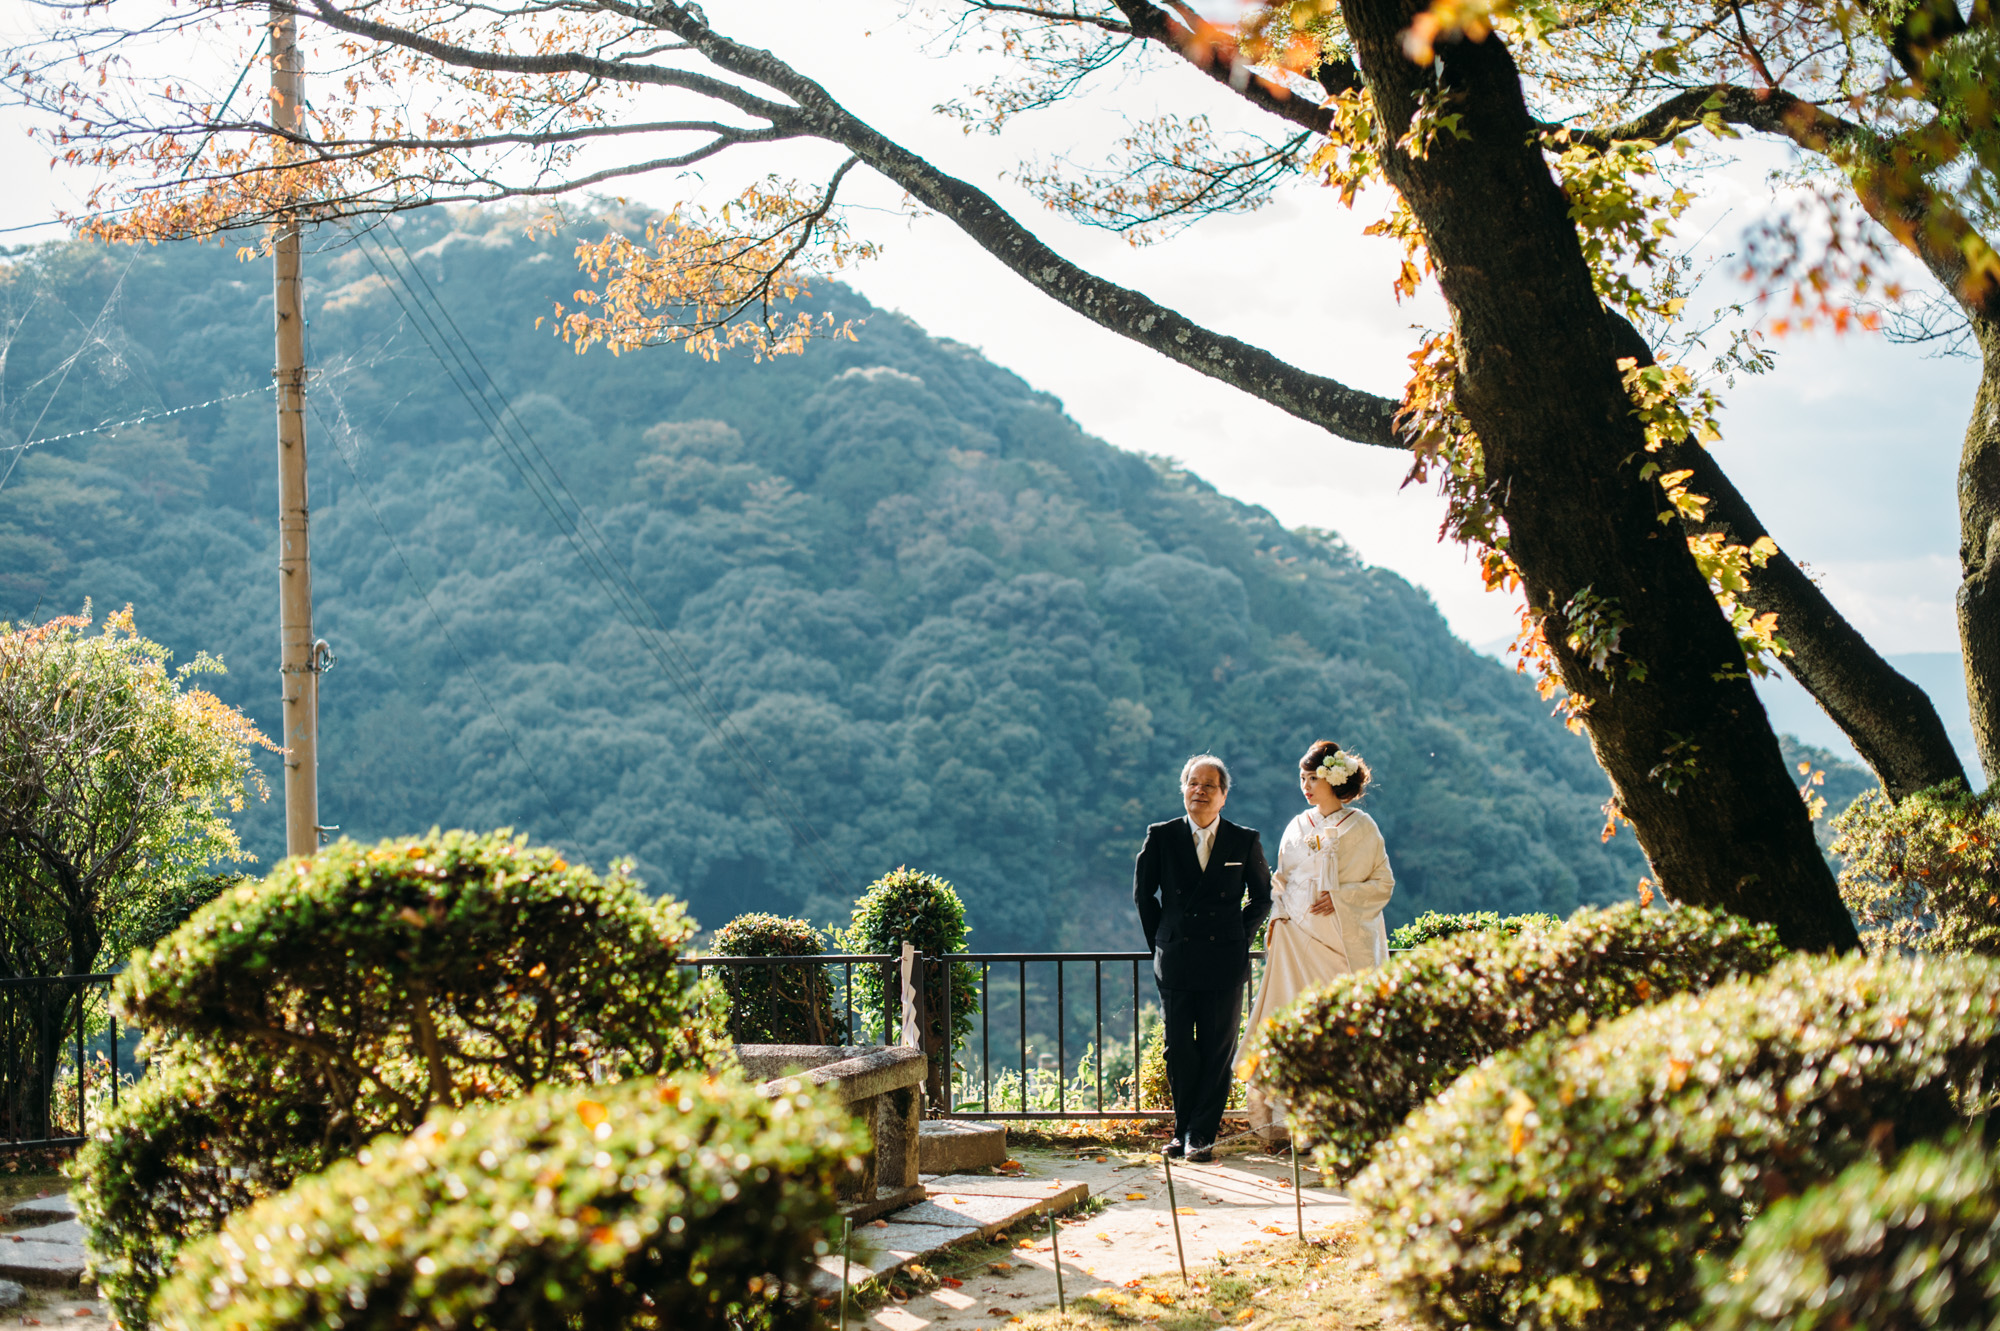 kyoto wedding0040